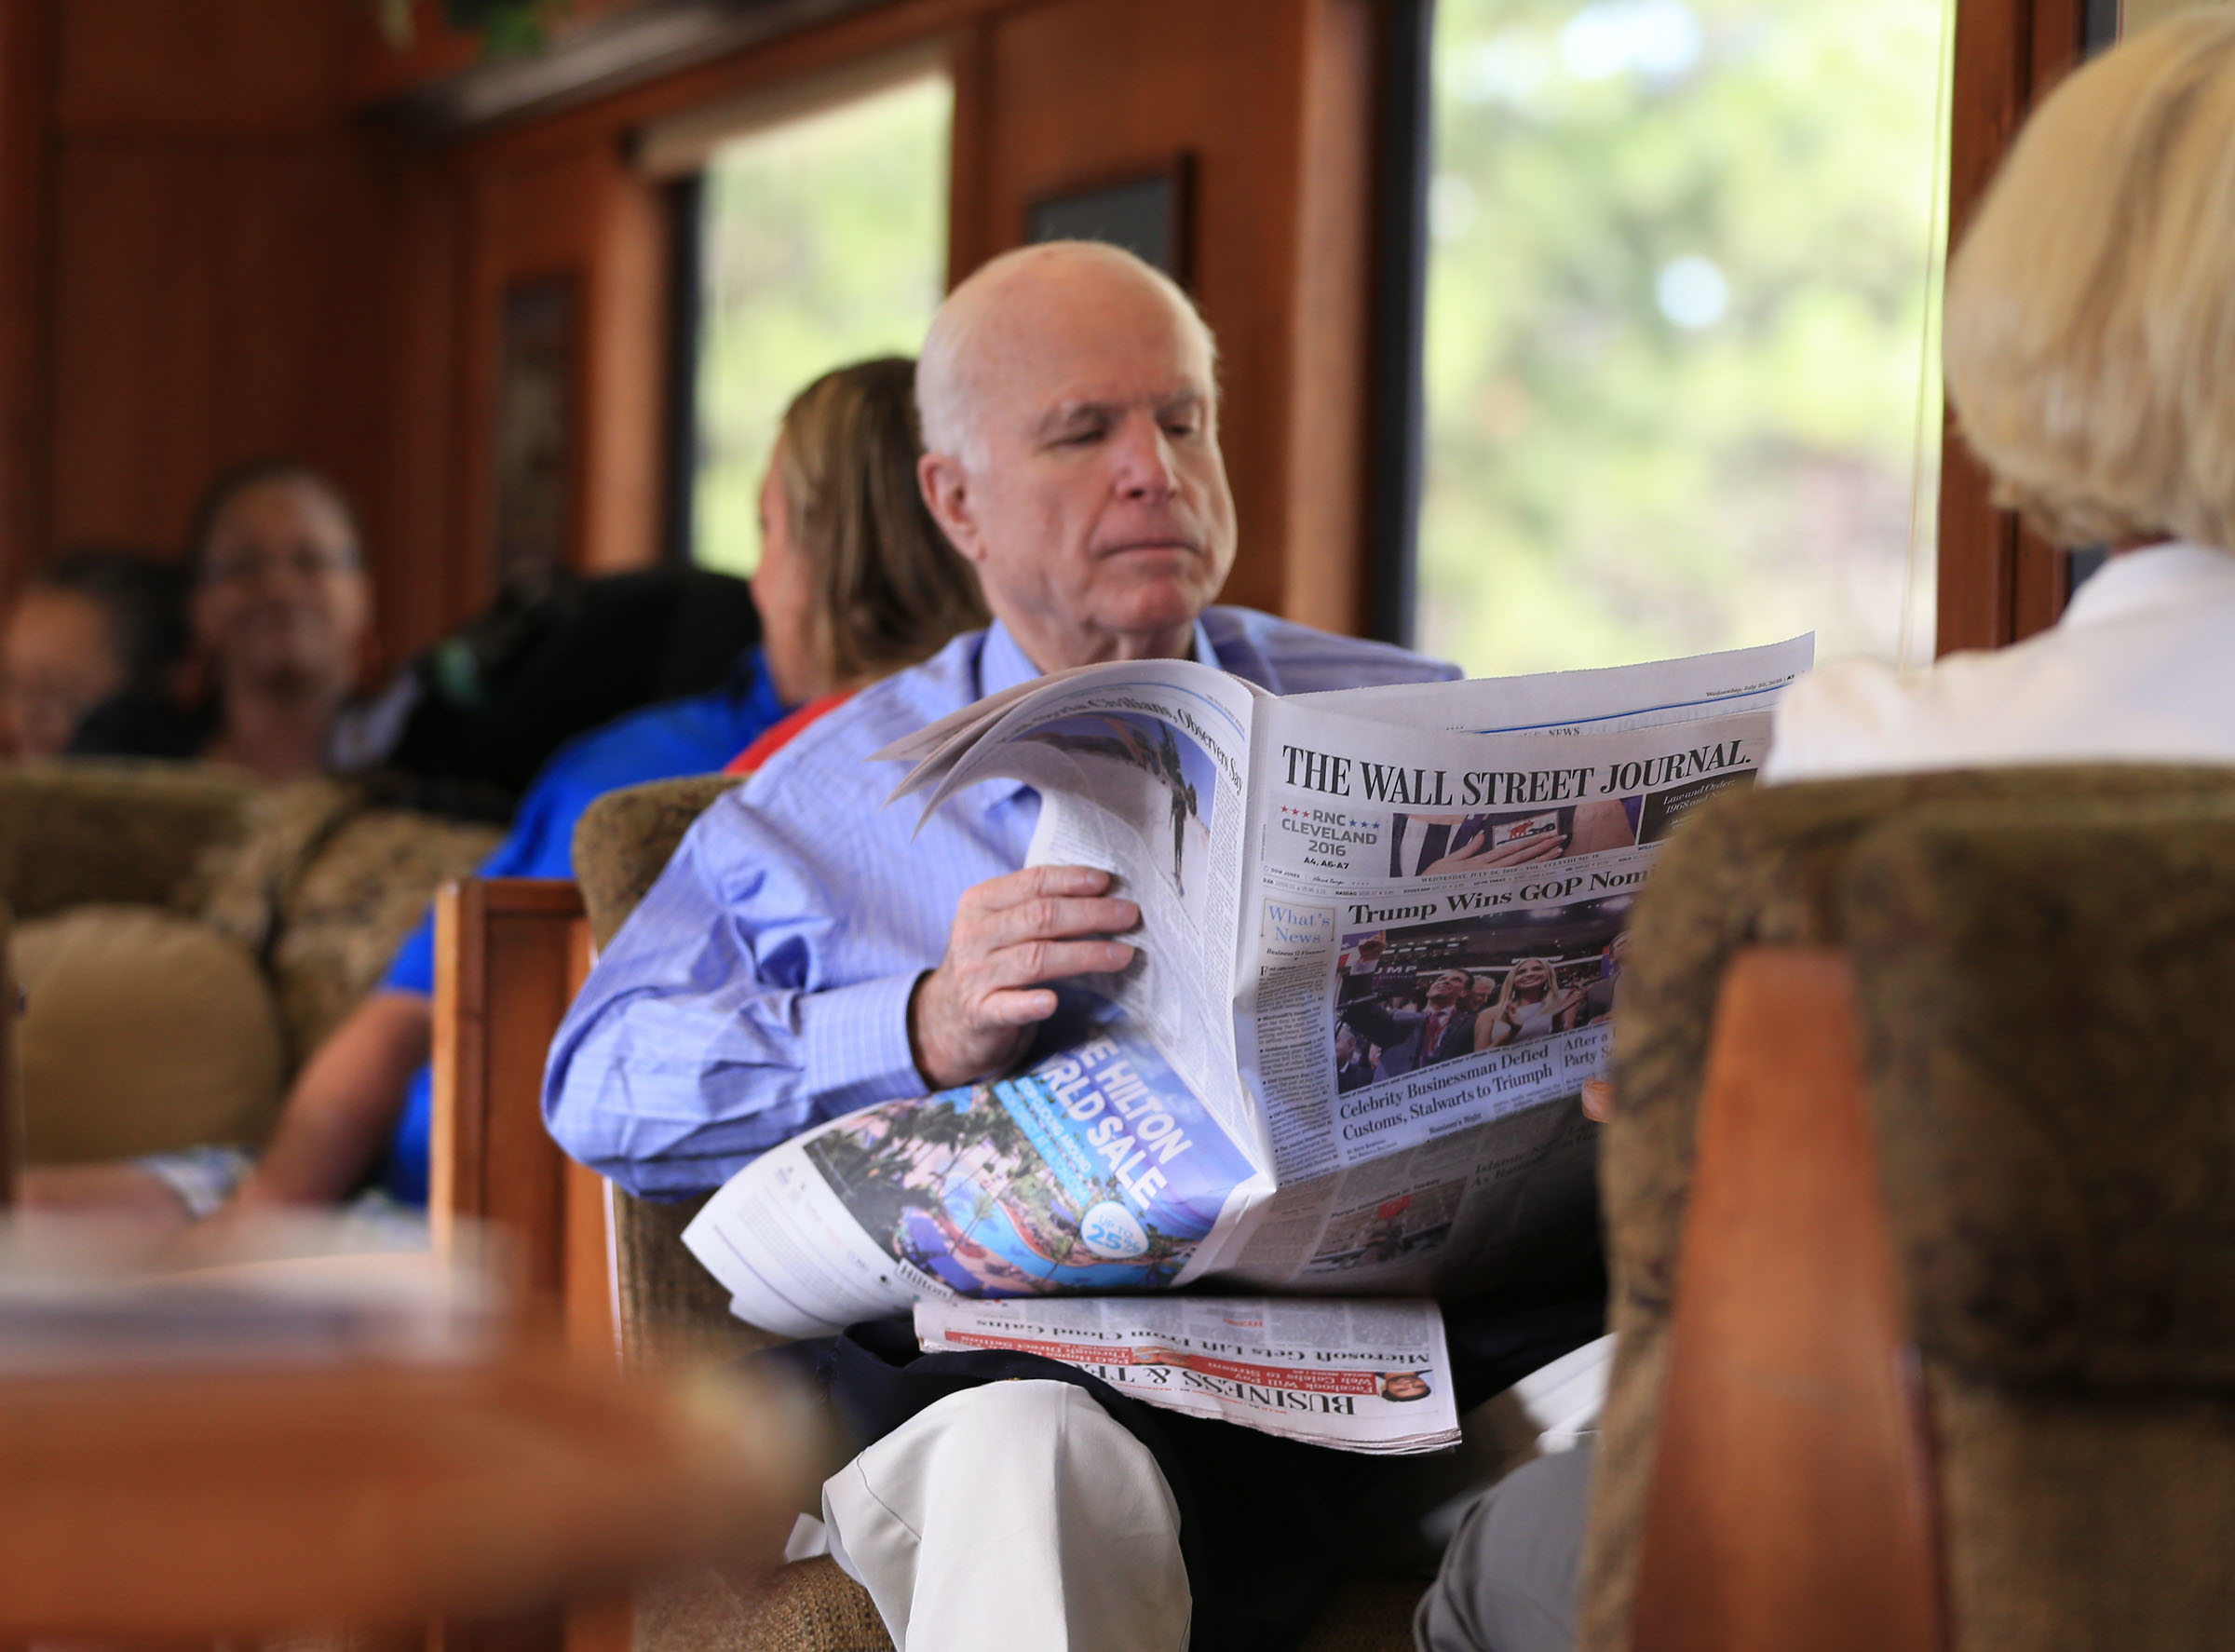 United States Senator John McCain reads the headlines announcing Trump's Republican National Convention victory as the party's nominee as he rides the train to the Grand Canyon out of Williams, Arizona Wednesday morning. (Photograph by Daniel A. Anderson)